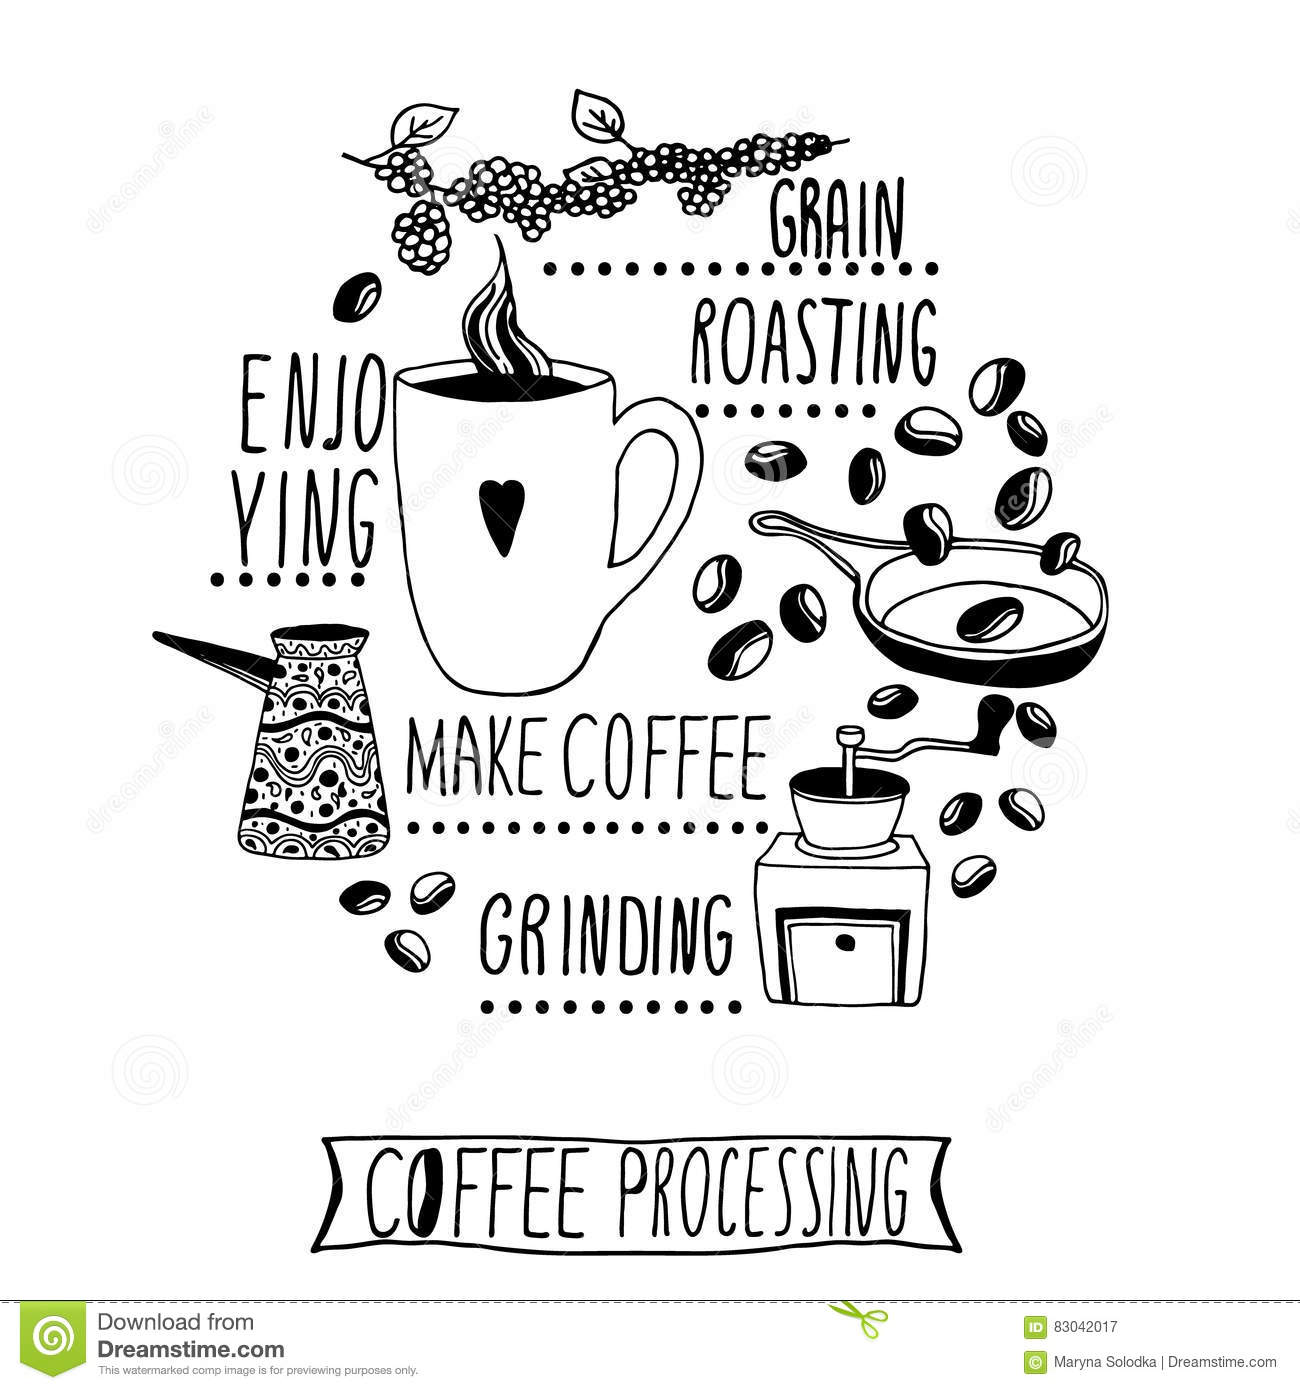 essays process making coffee The quality and flavor of your coffee is not only determined by your favorite brewing process, but also by the type of coffee if you are making your coffee.